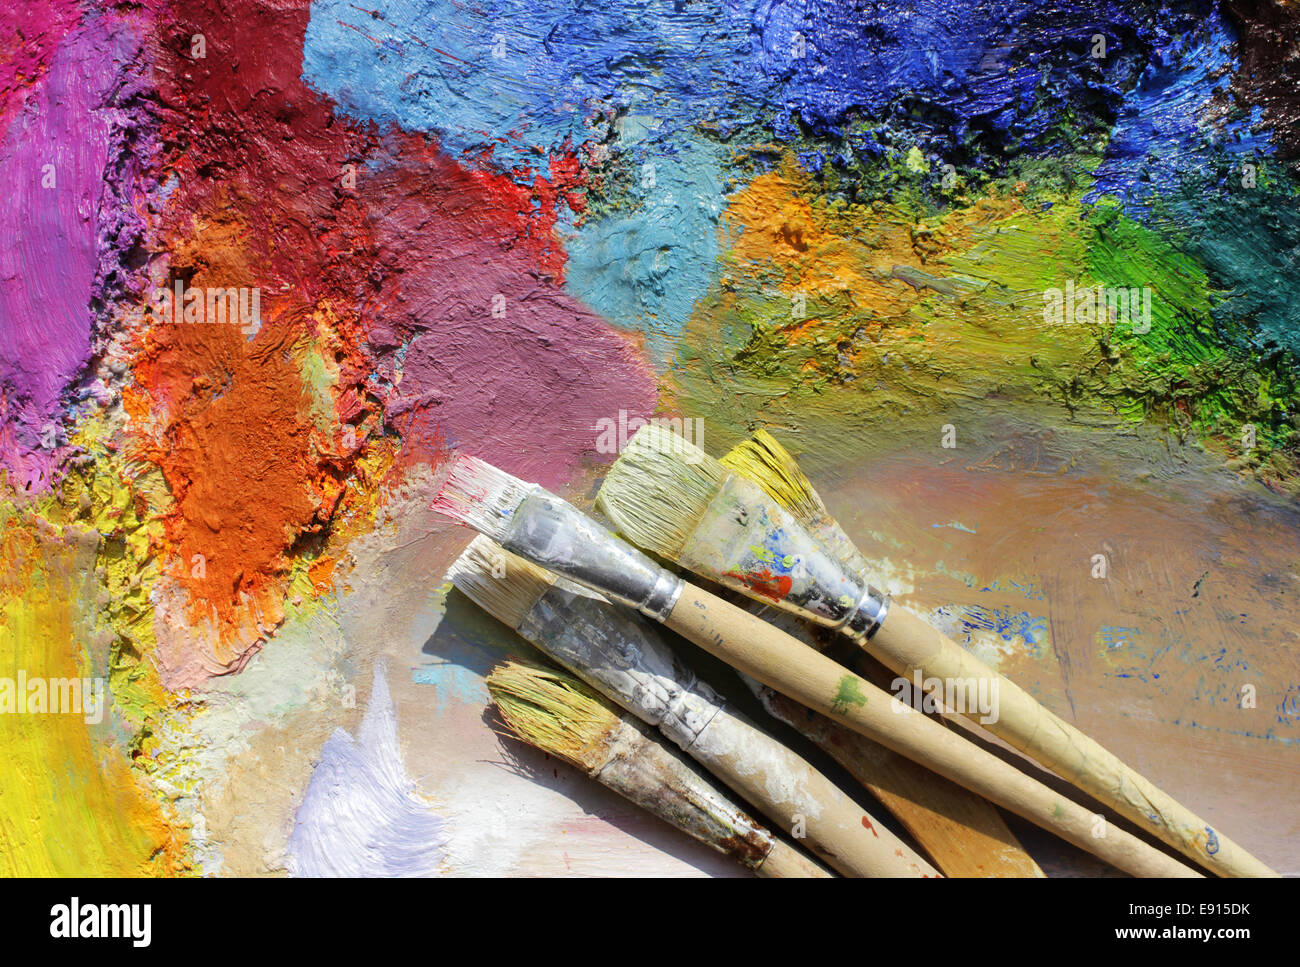 paint brushes on a palette - Stock Image